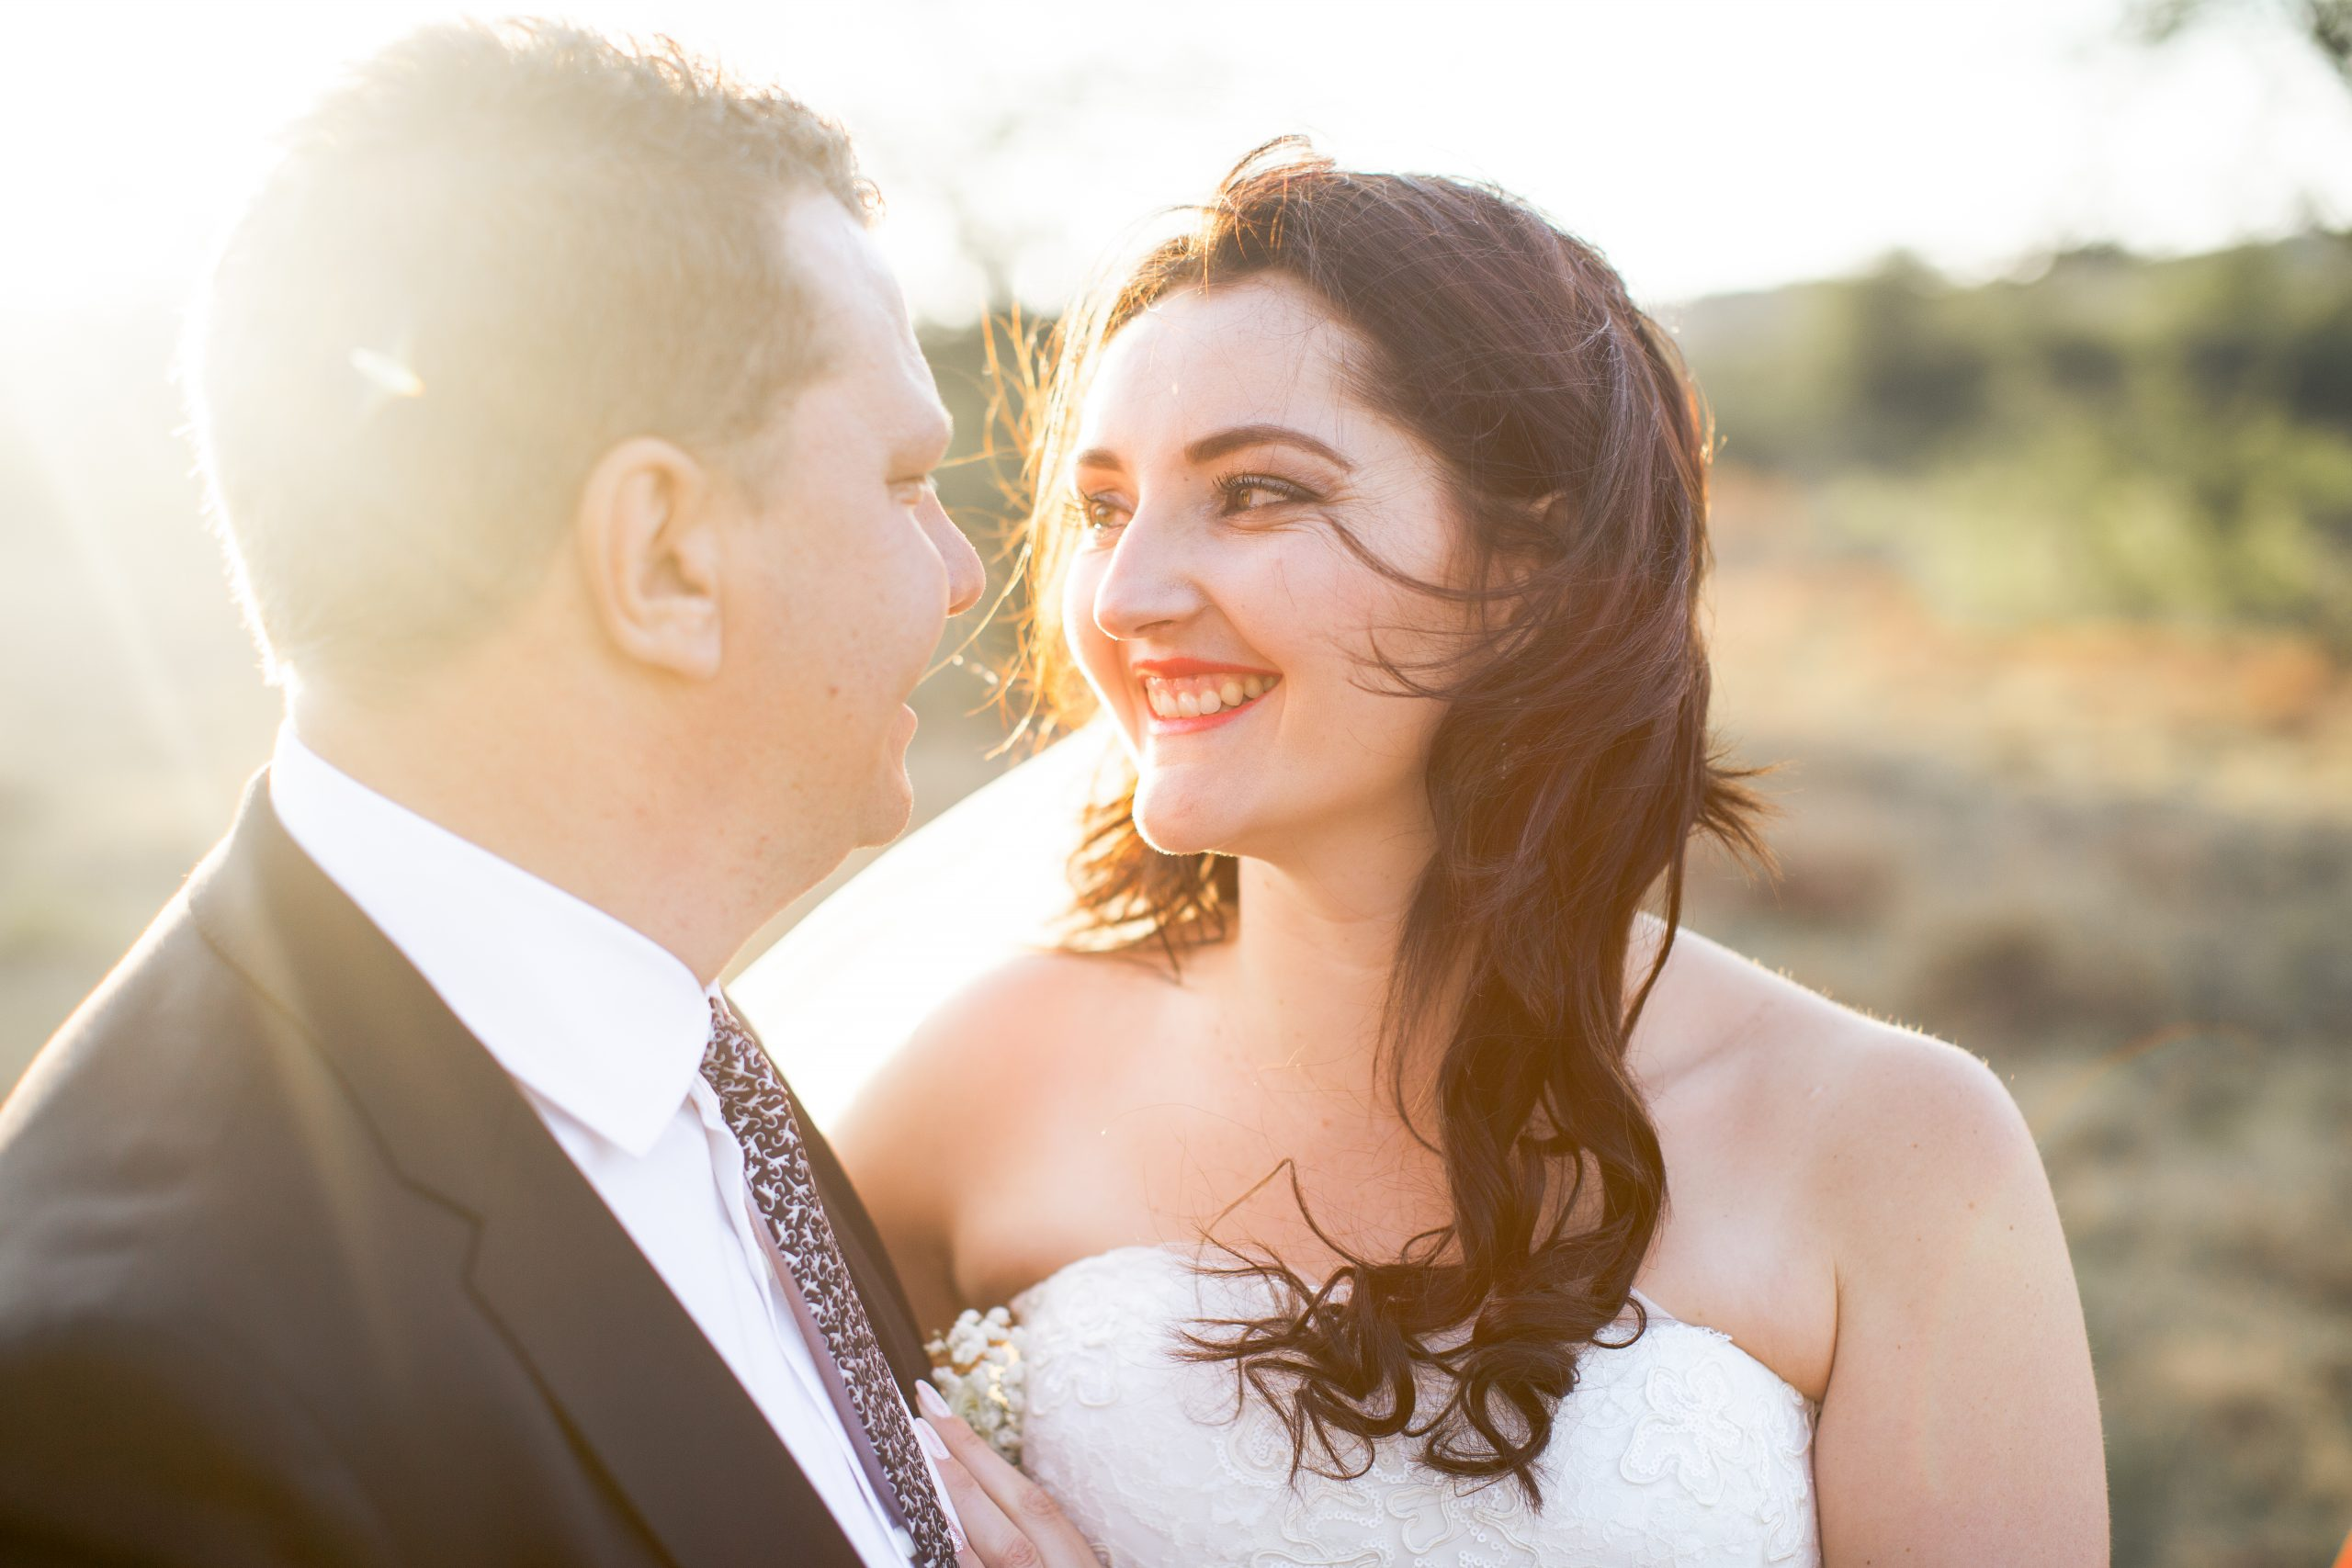 Featured_Image_Couples_elopement_sunset_Photography_JessSterkPhotography